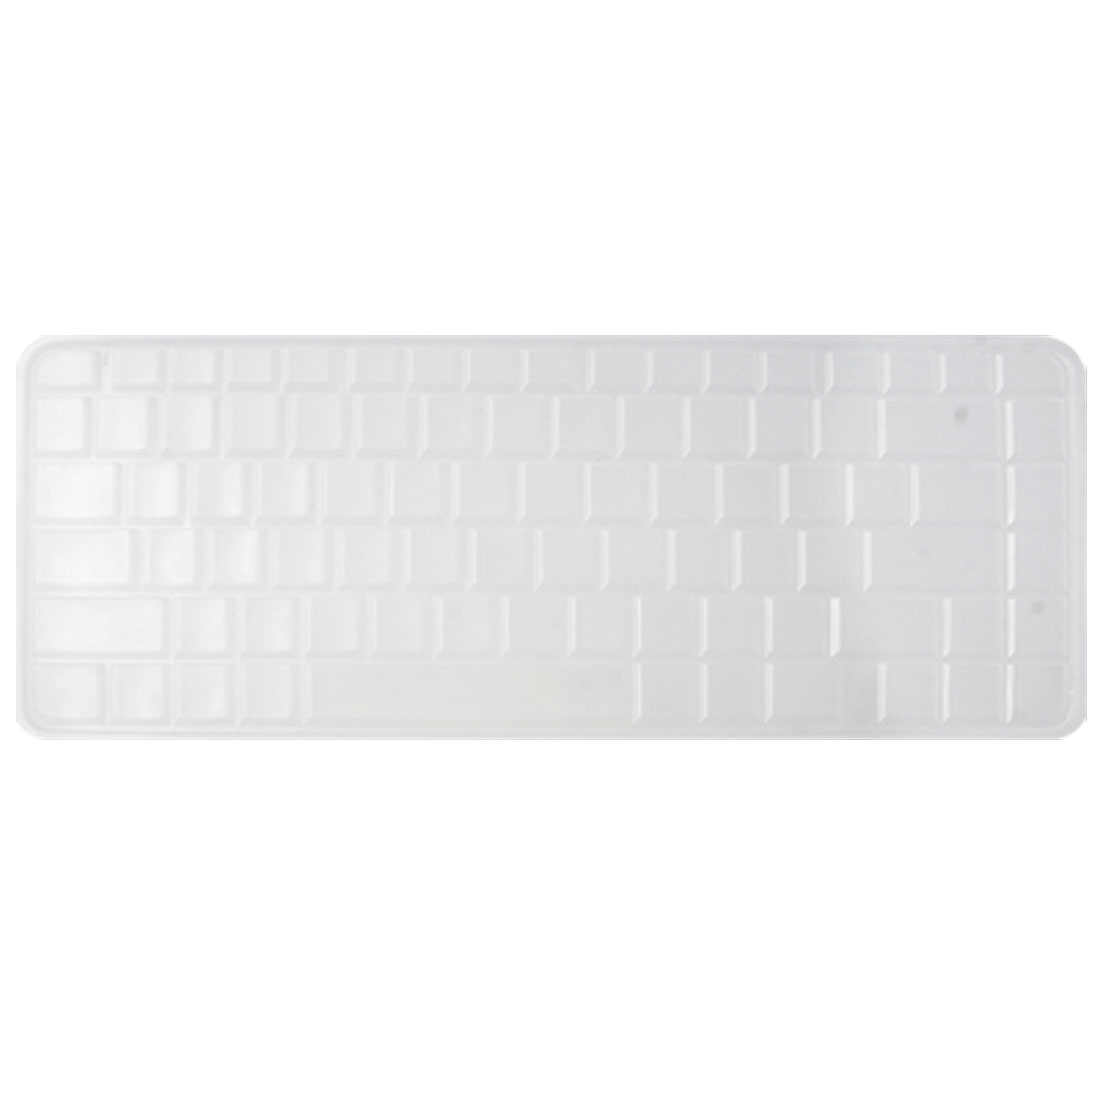 Soft Silicone Keypad Keyboard Cover Film for HP DV3000